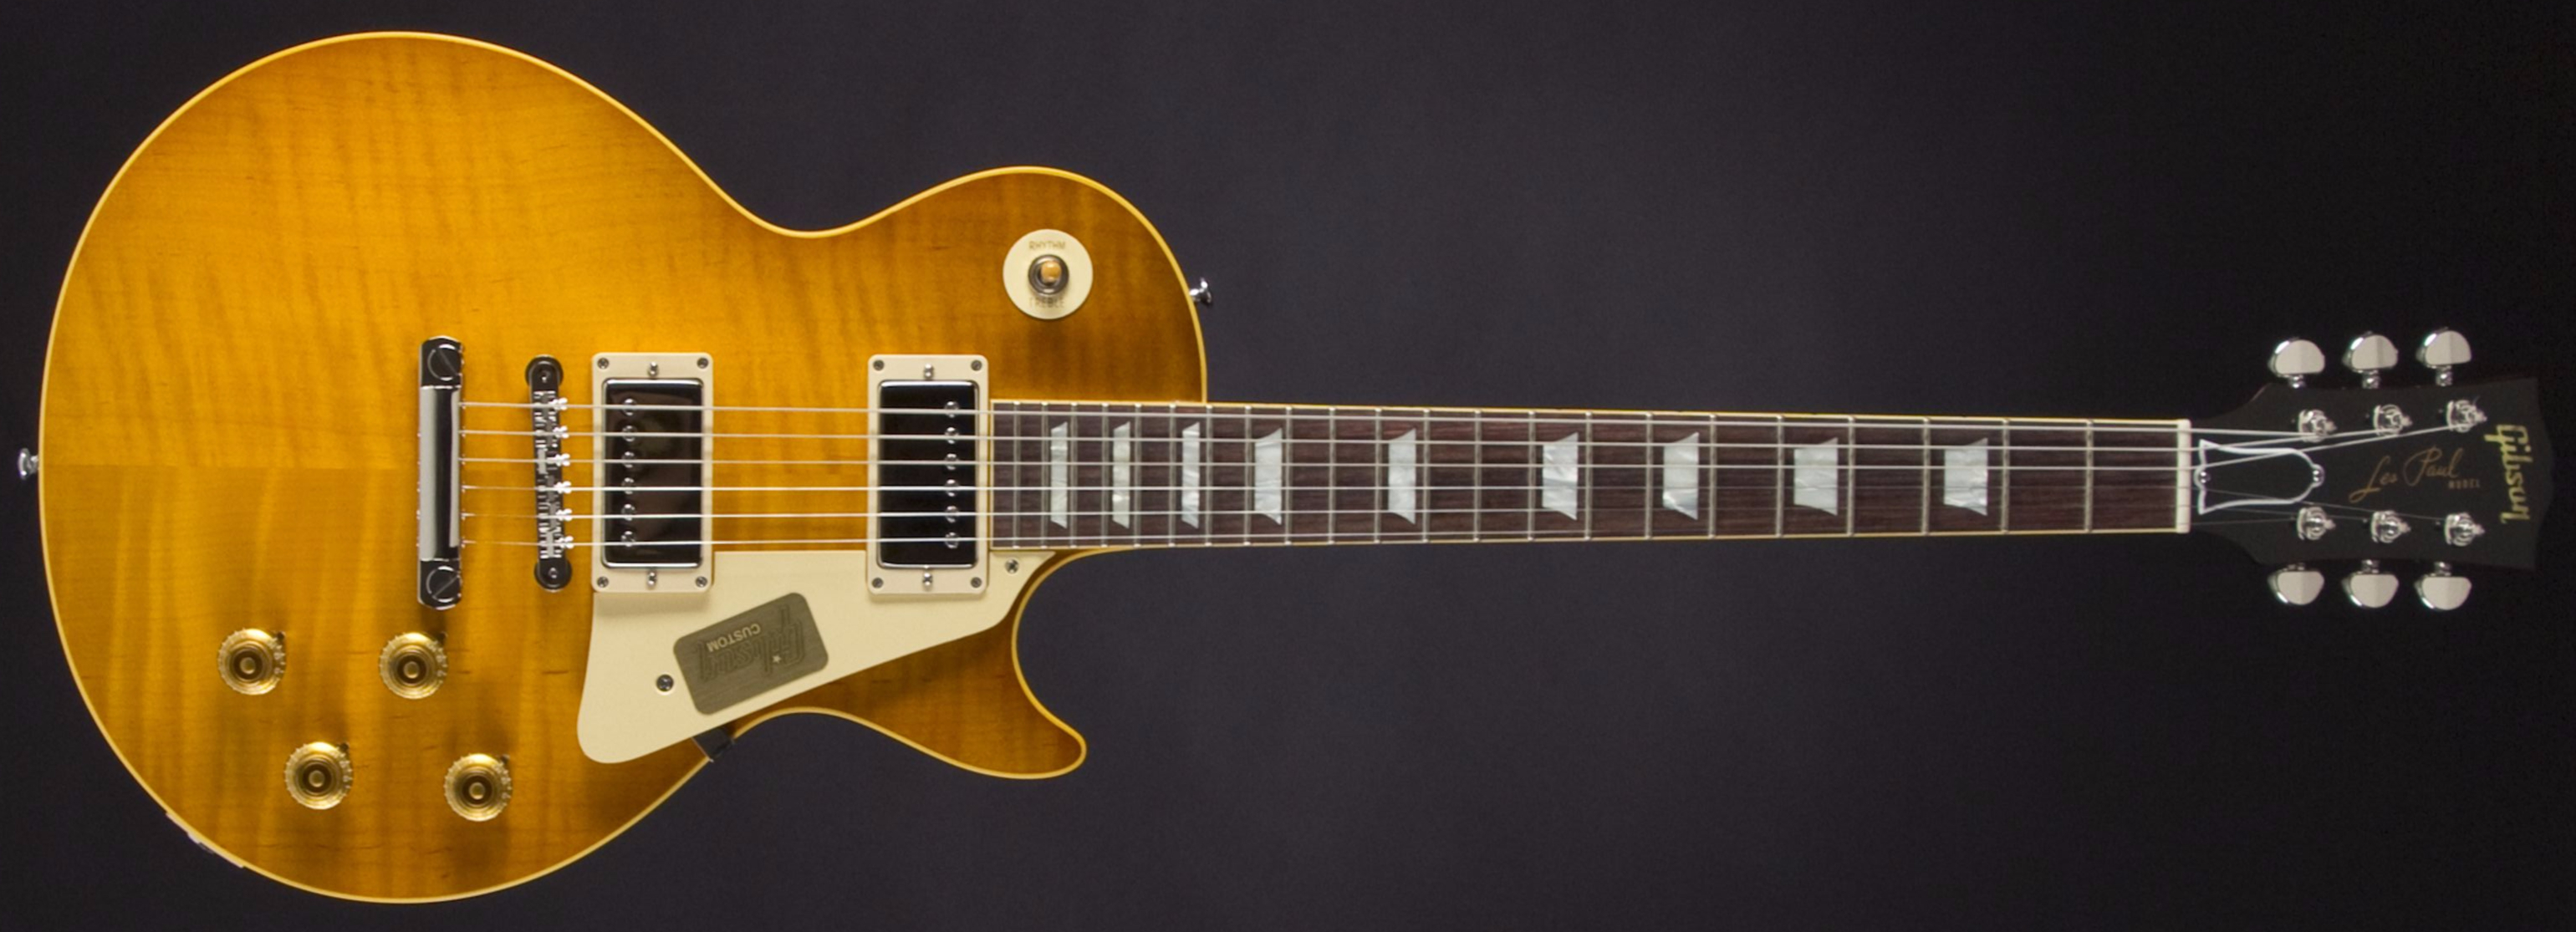 GIBSON Ace Frehley 1959 Les Paul Standard #AF088